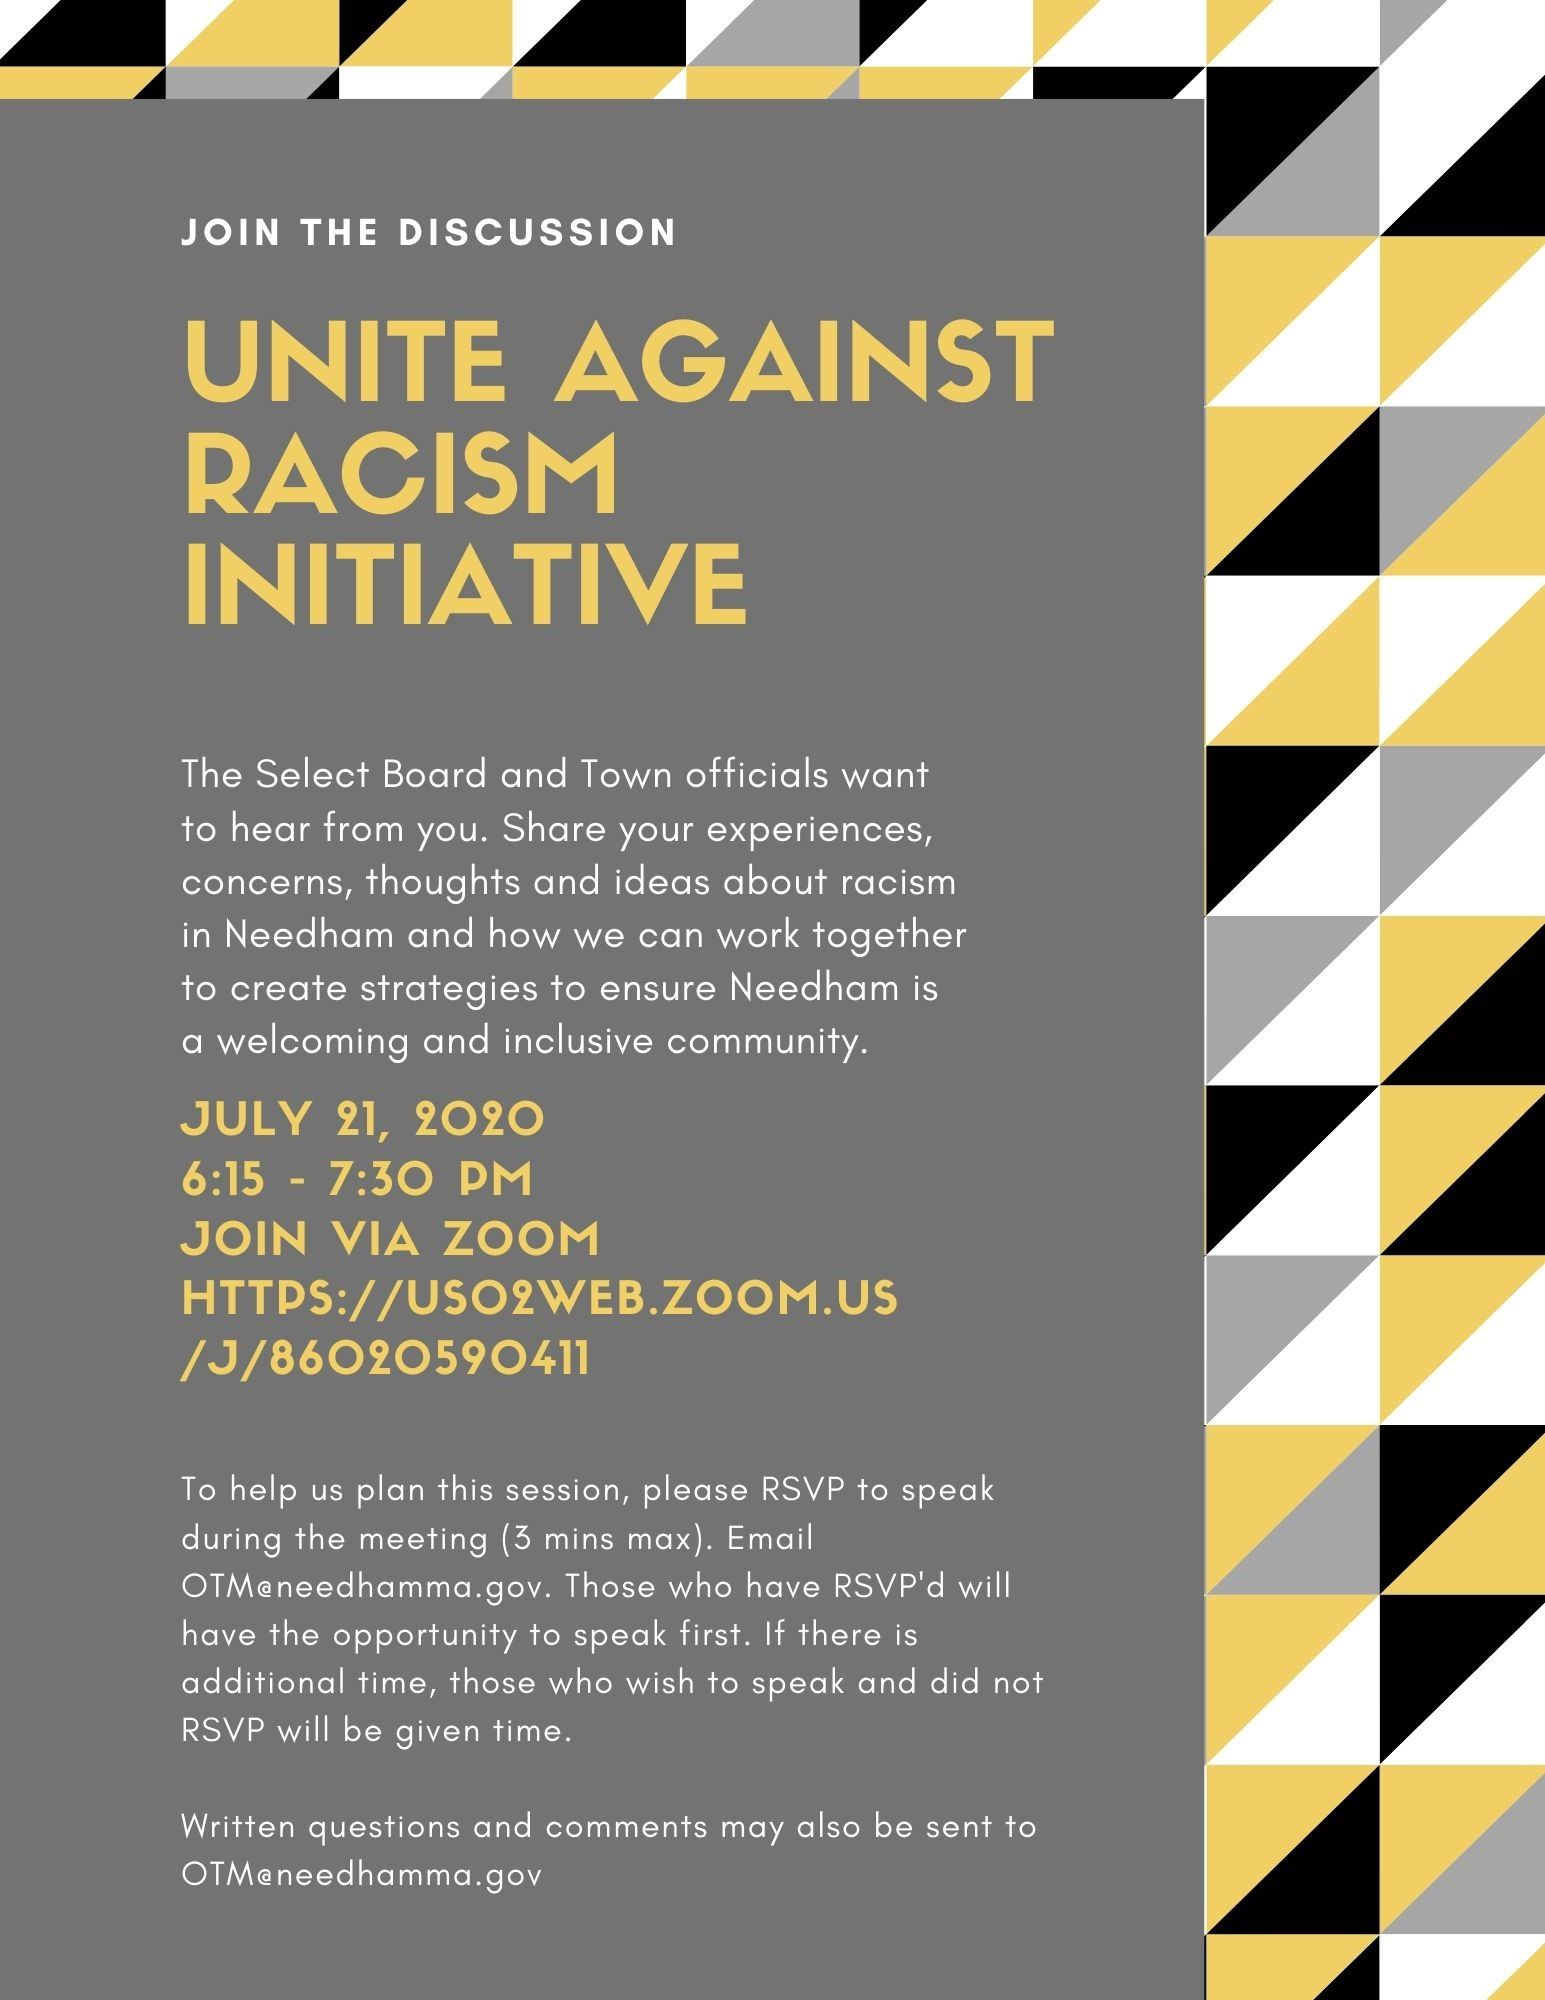 Needham Unite Against Racism initiative July 21 final